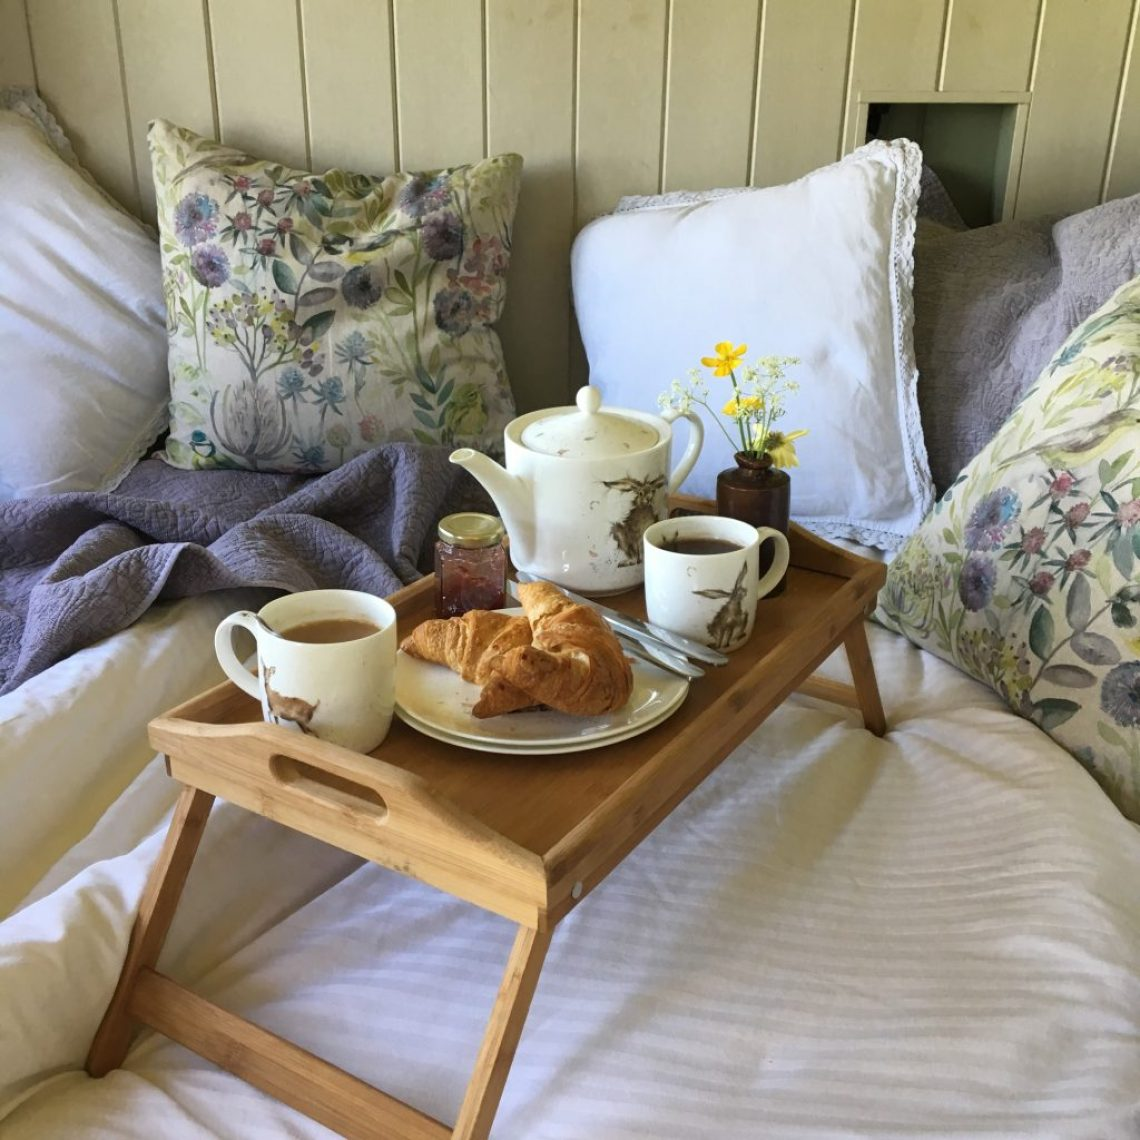 On the bed at the Happy Hare breakfast of croissants and tea sits on a tea tray